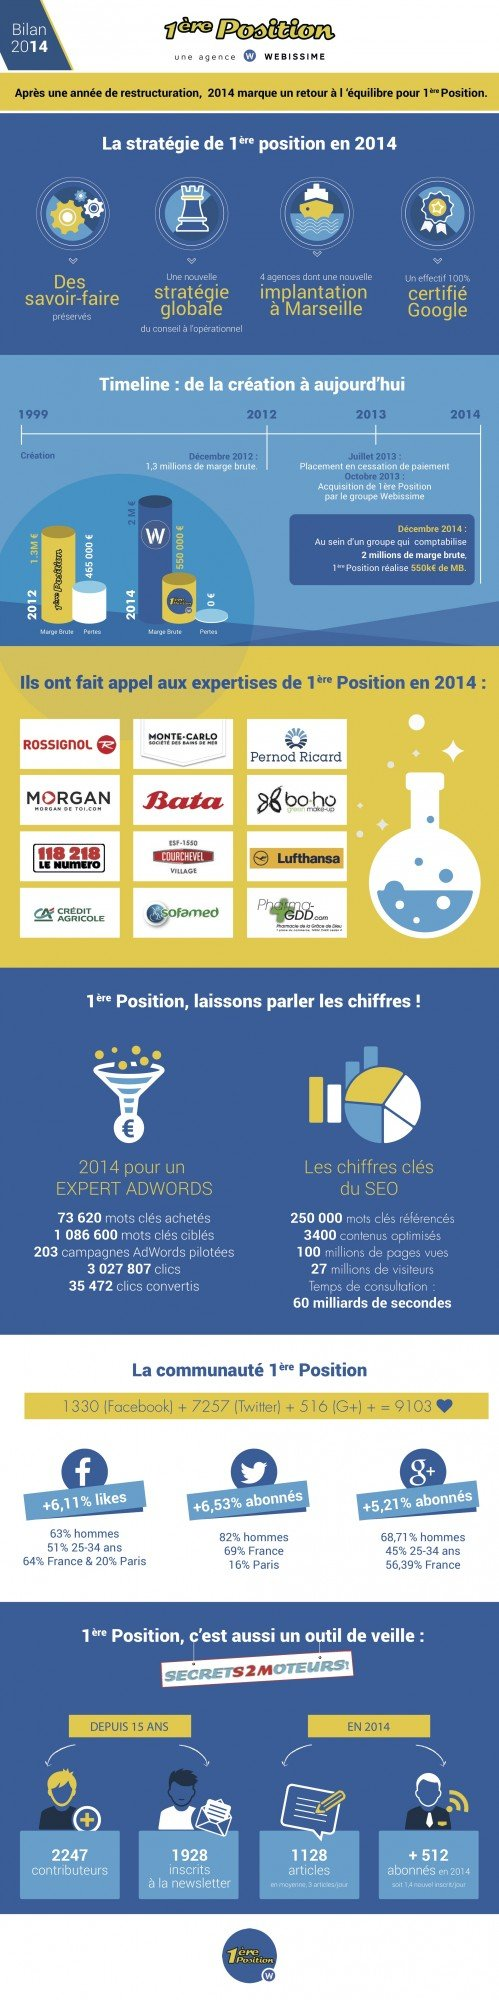 1ere-position-agence-referencement-bilan-2014